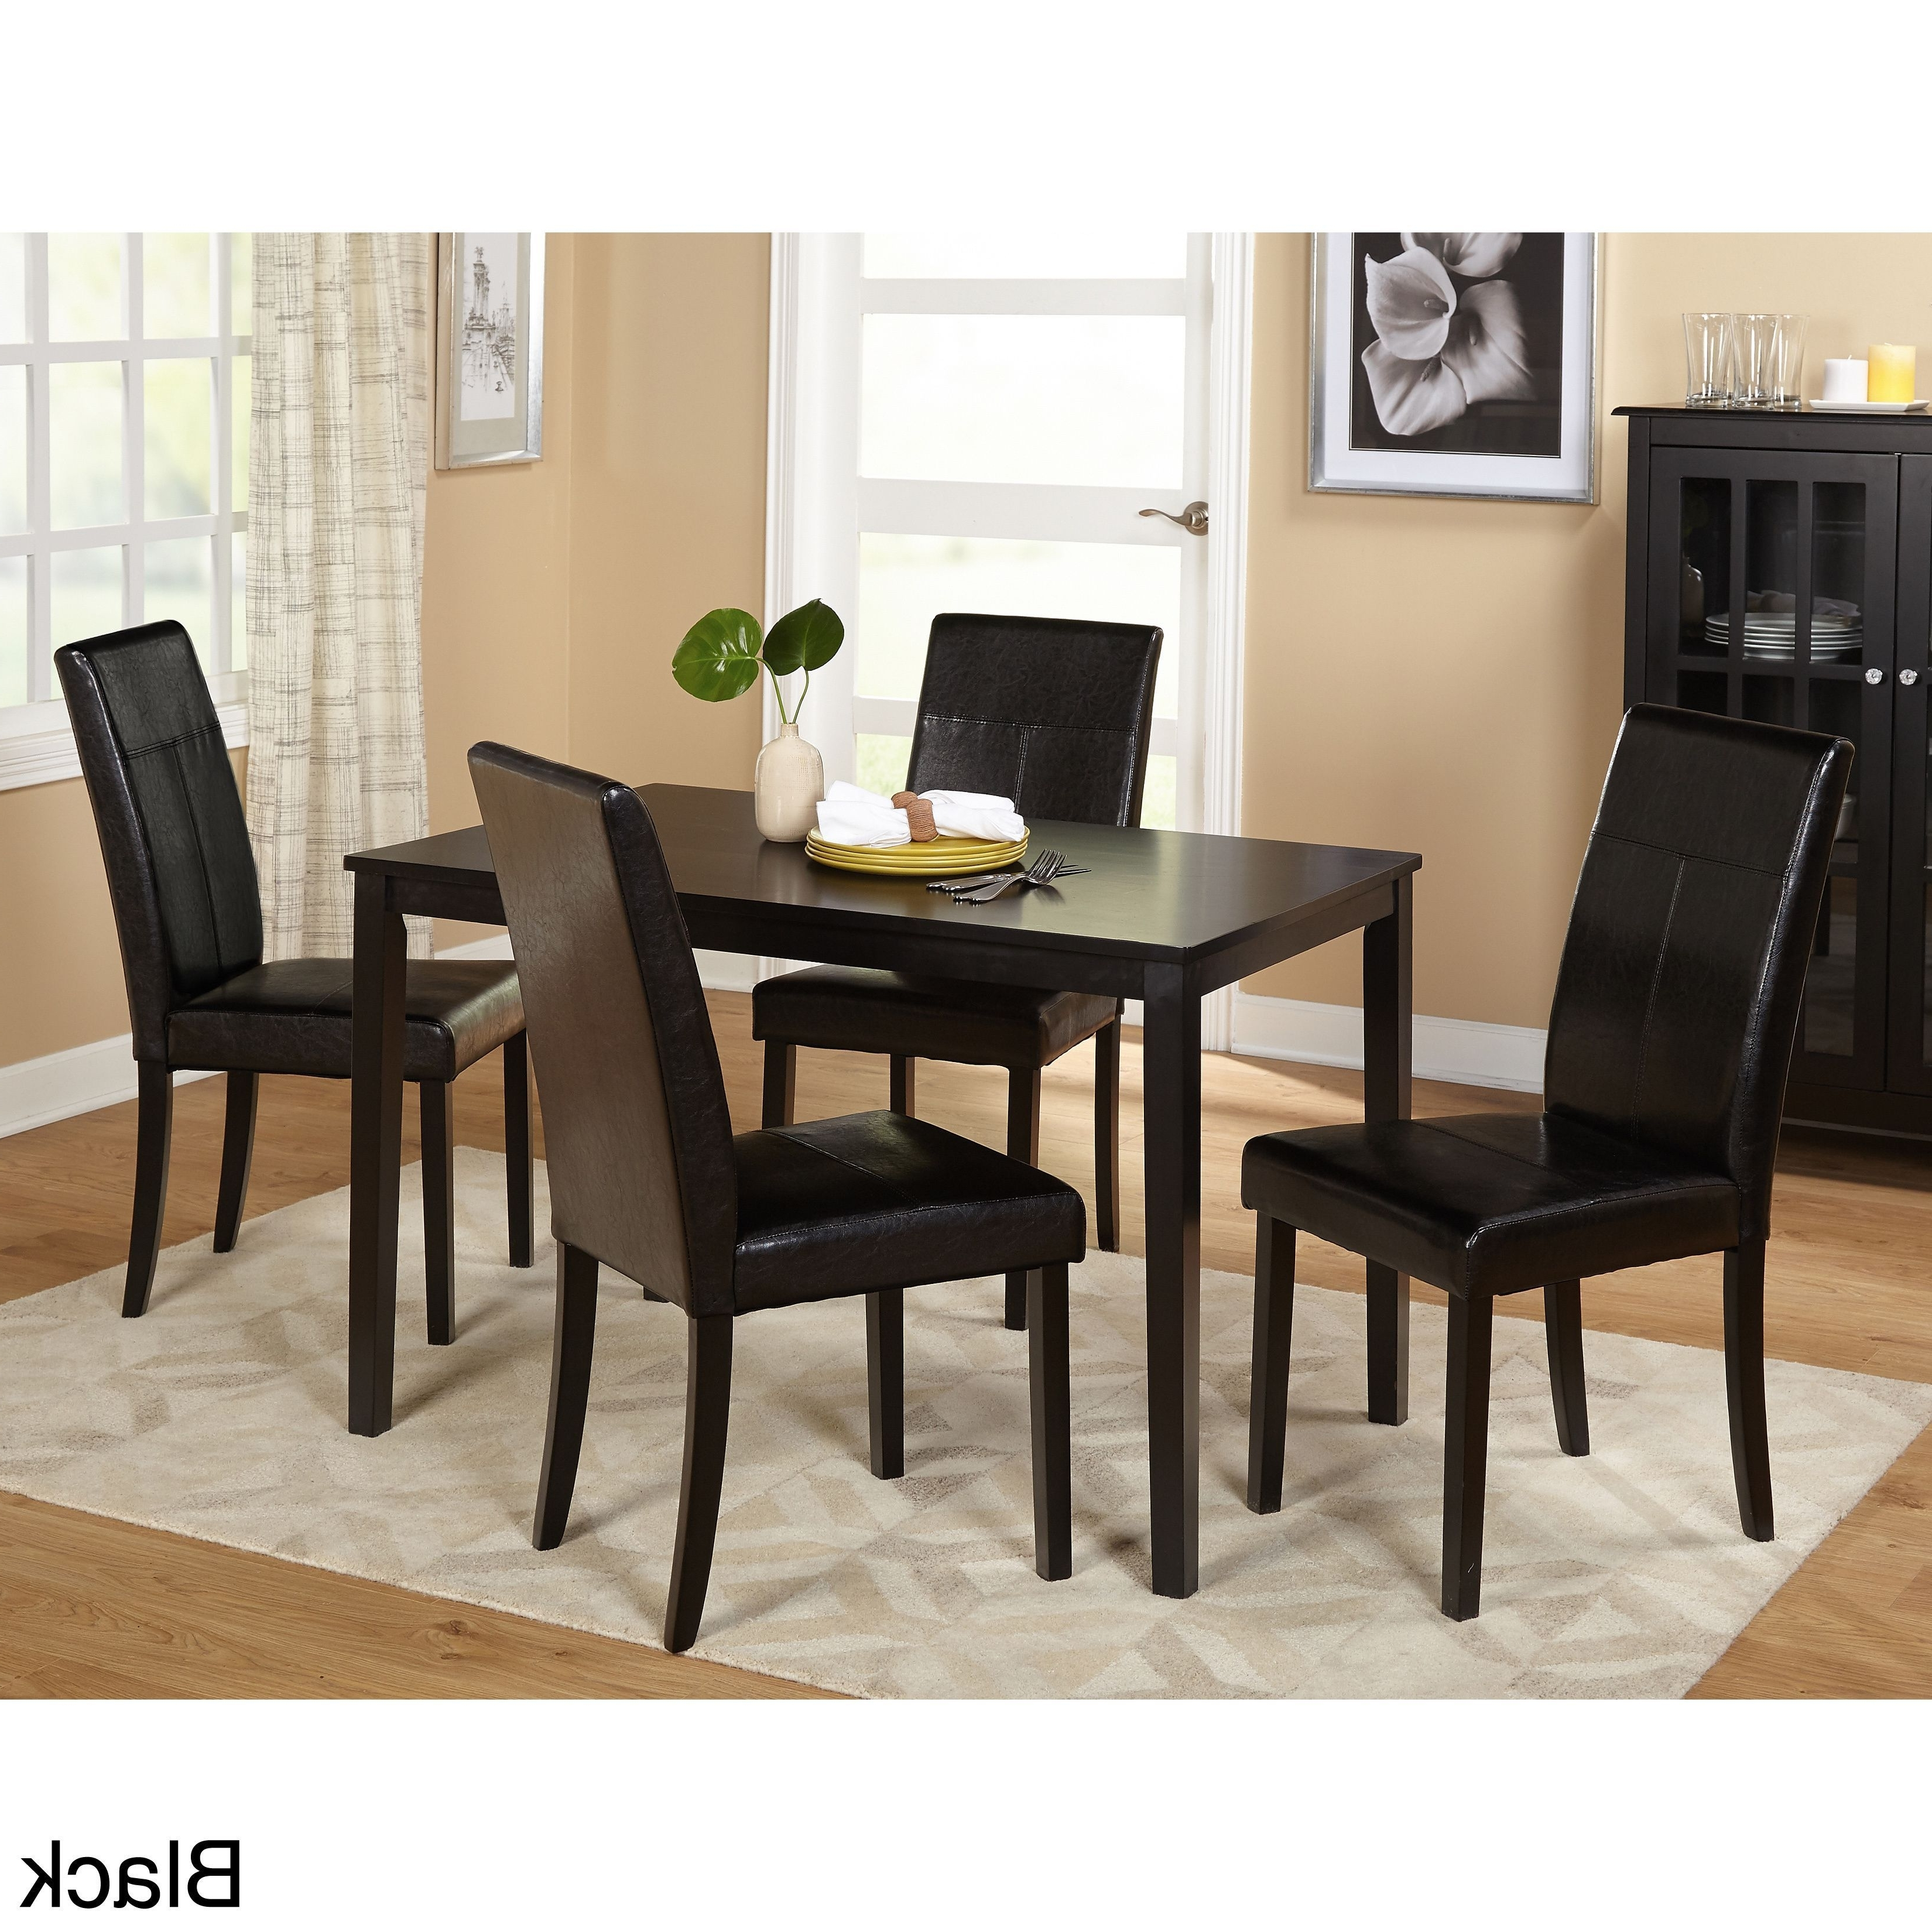 Toby 7 Piece Dining Setorren Ellis Reviews Intended For 2017 Jaxon Grey 5 Piece Round Extension Dining Sets With Upholstered Chairs (View 14 of 25)